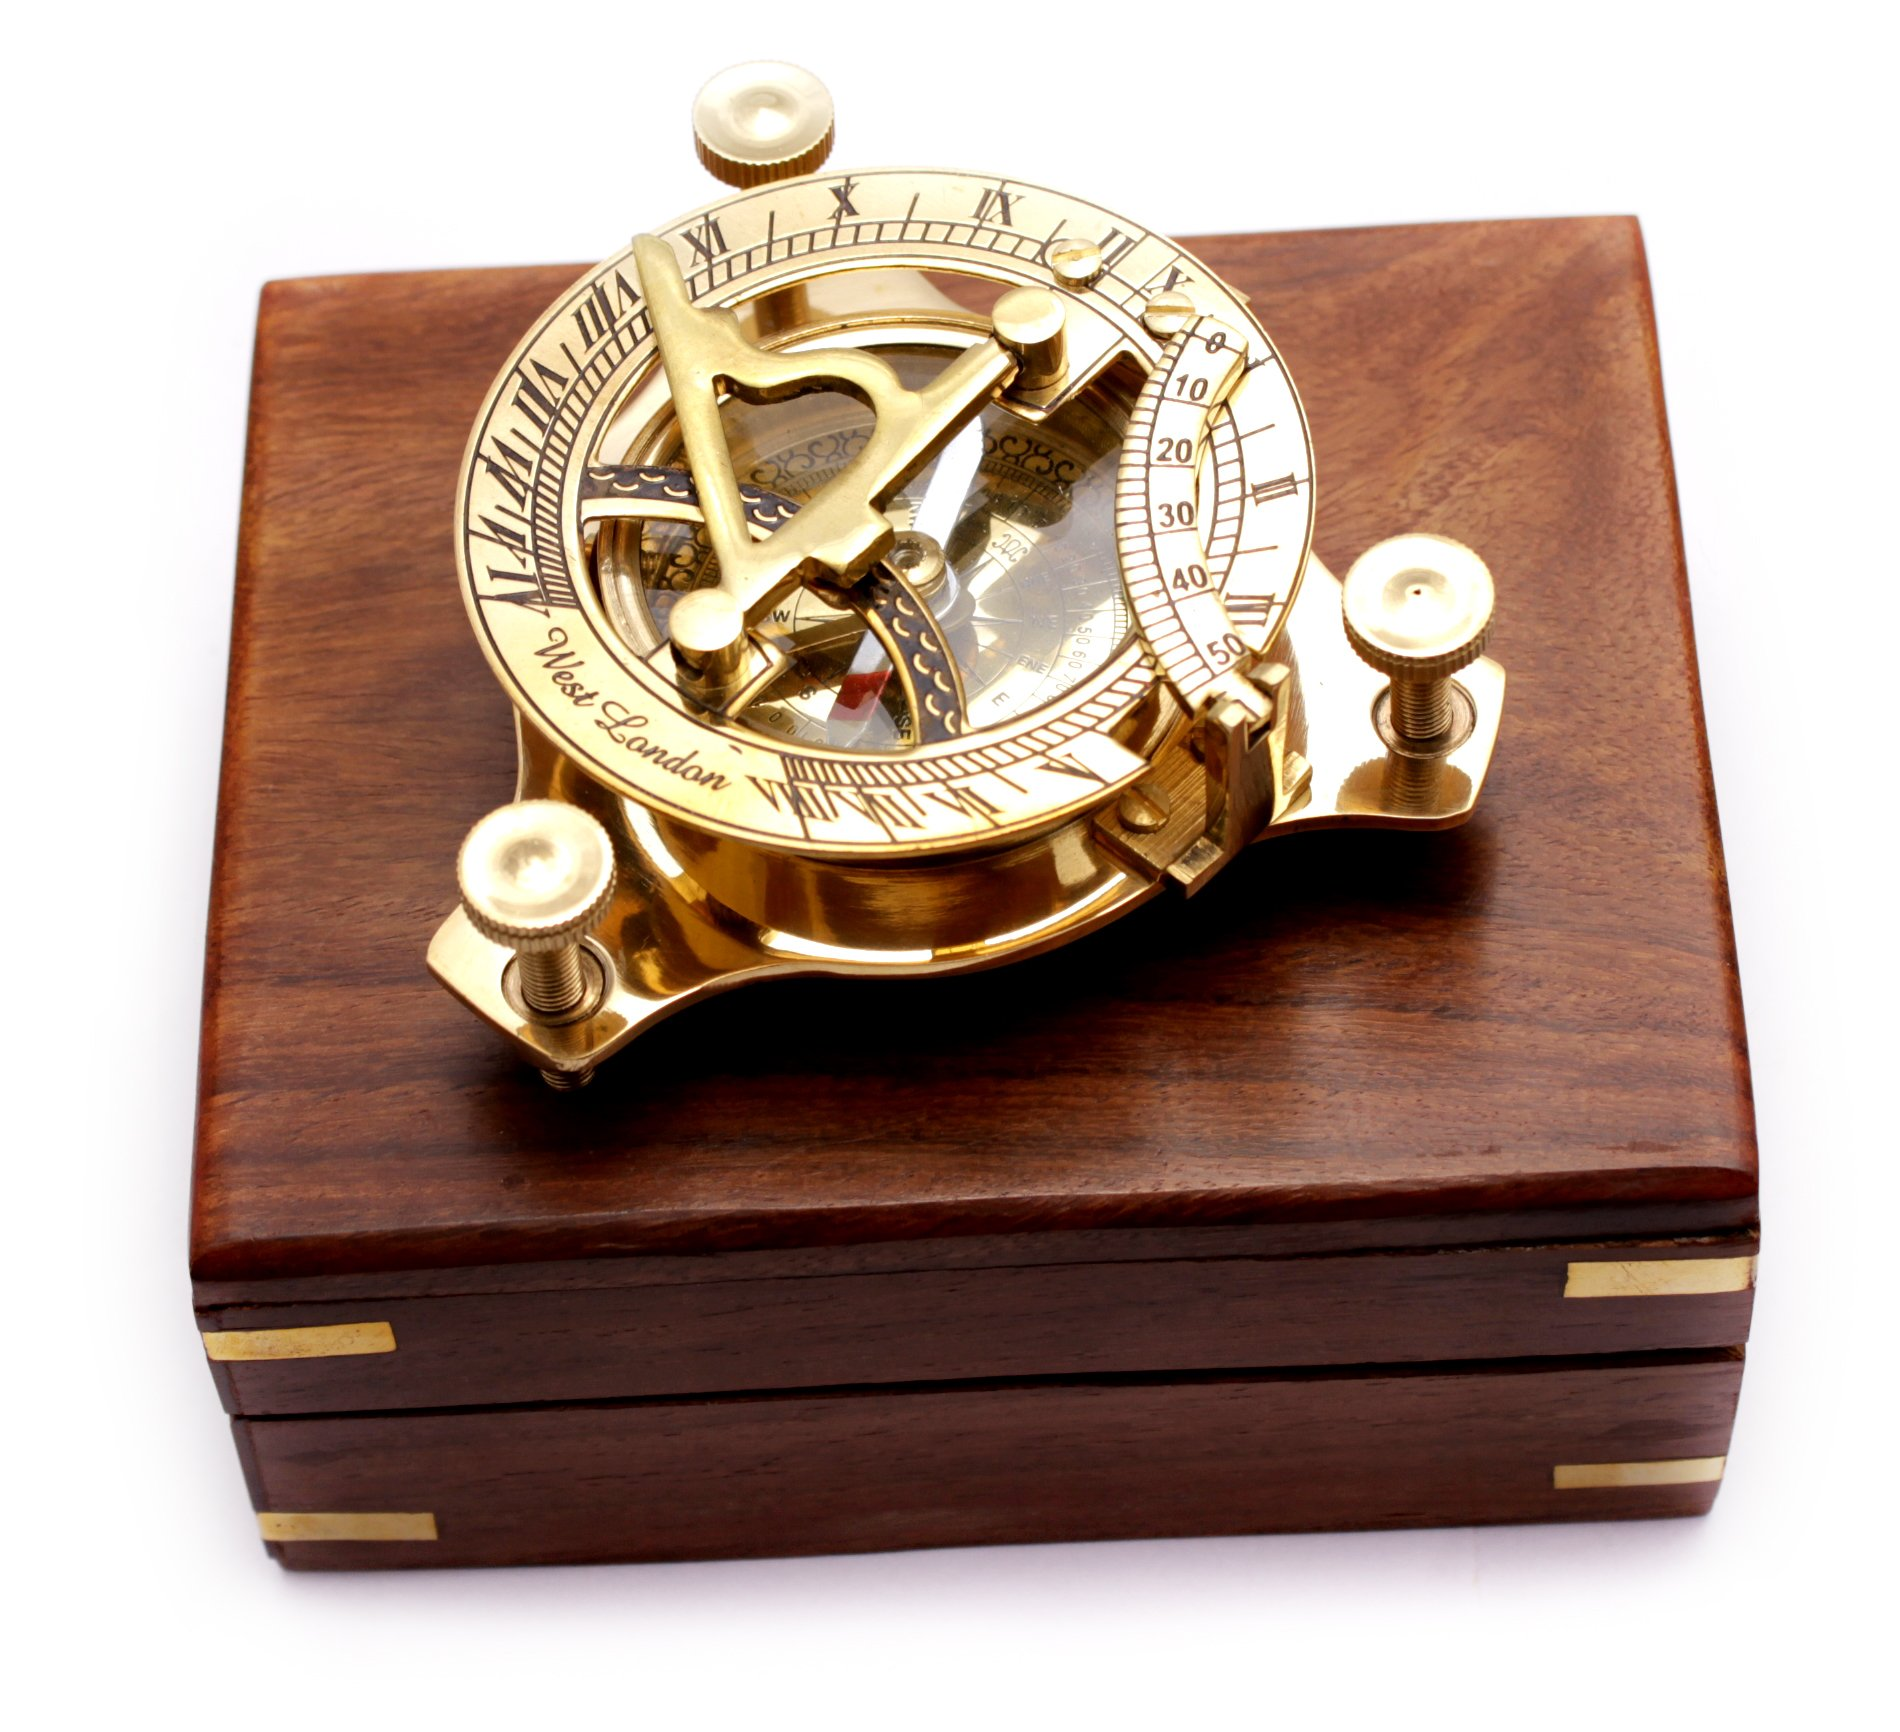 Captain's Brass Triangle Sundial Compass 3.2'' - Brass Desk Compasses - Nautical Decor Home Decoration - Executive Promotional Gift